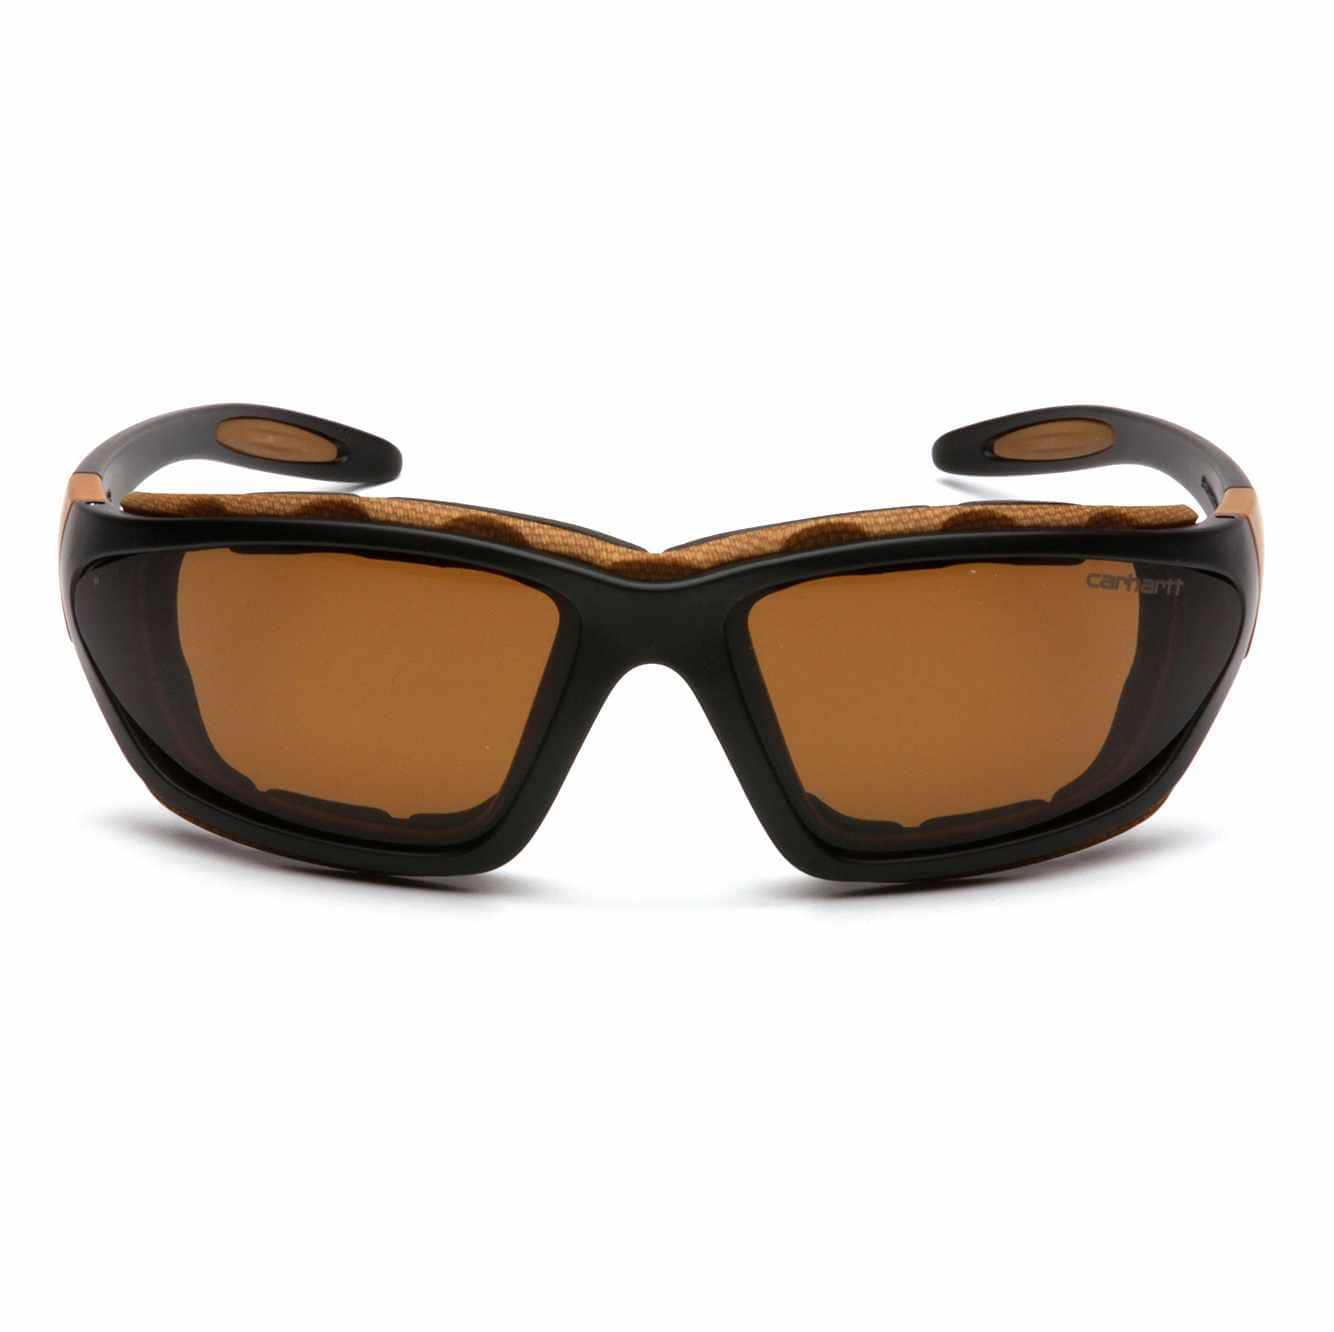 Picture of Carthage Safety Glasses with Anti Fog Lenses in Bronze